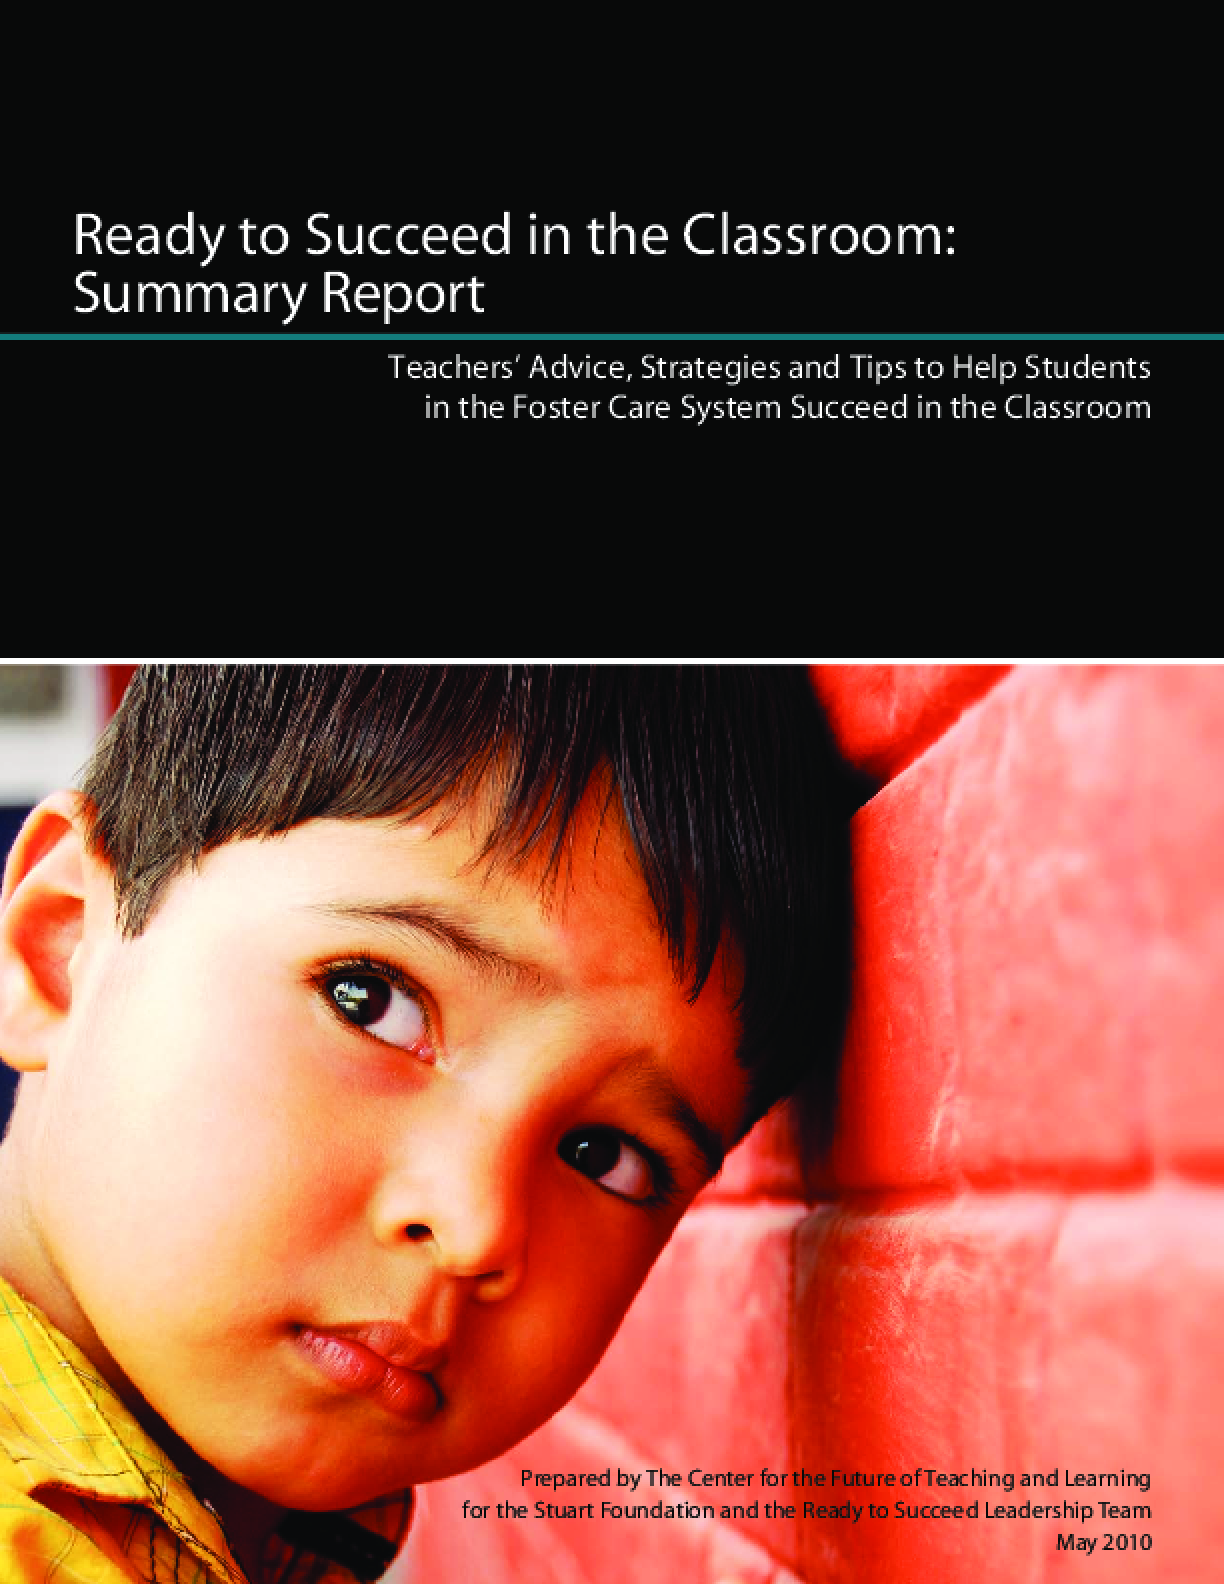 Ready to Succeed in the Classroom (Summary for Teachers)